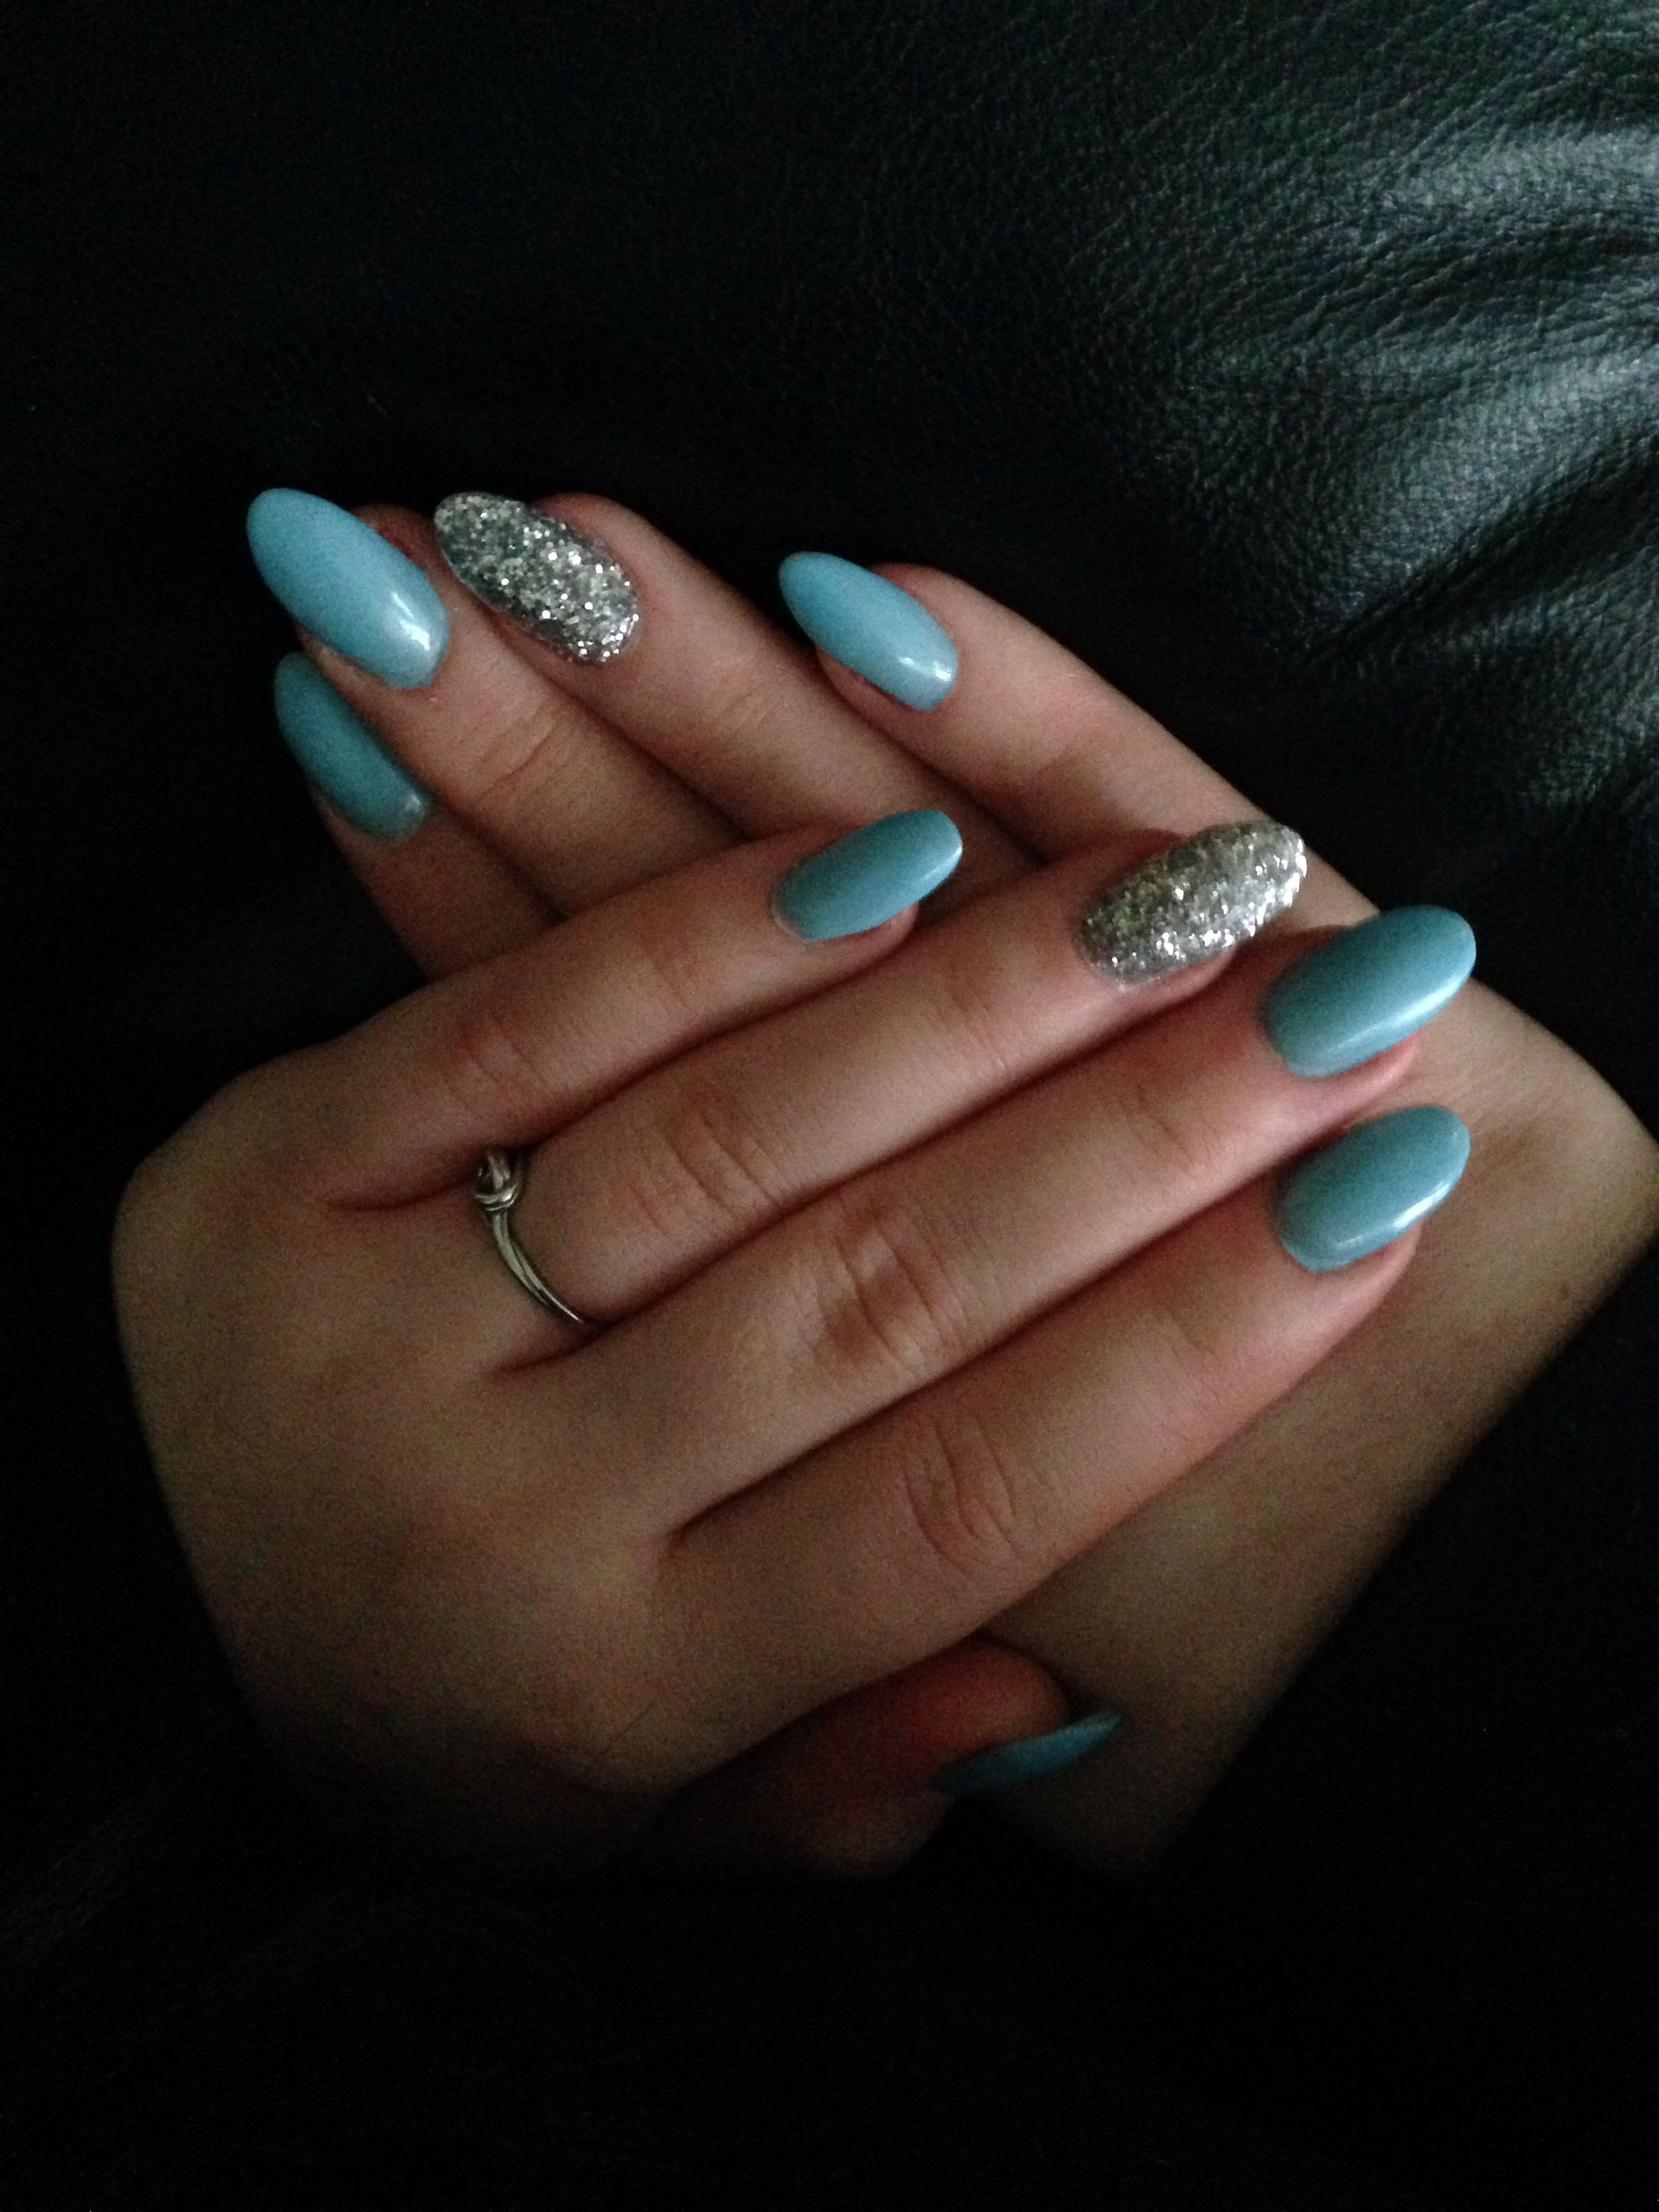 Baby Blue Oval Almond Shaped Nails Neon Pink Nails Almond Shape Nails Pink Nails